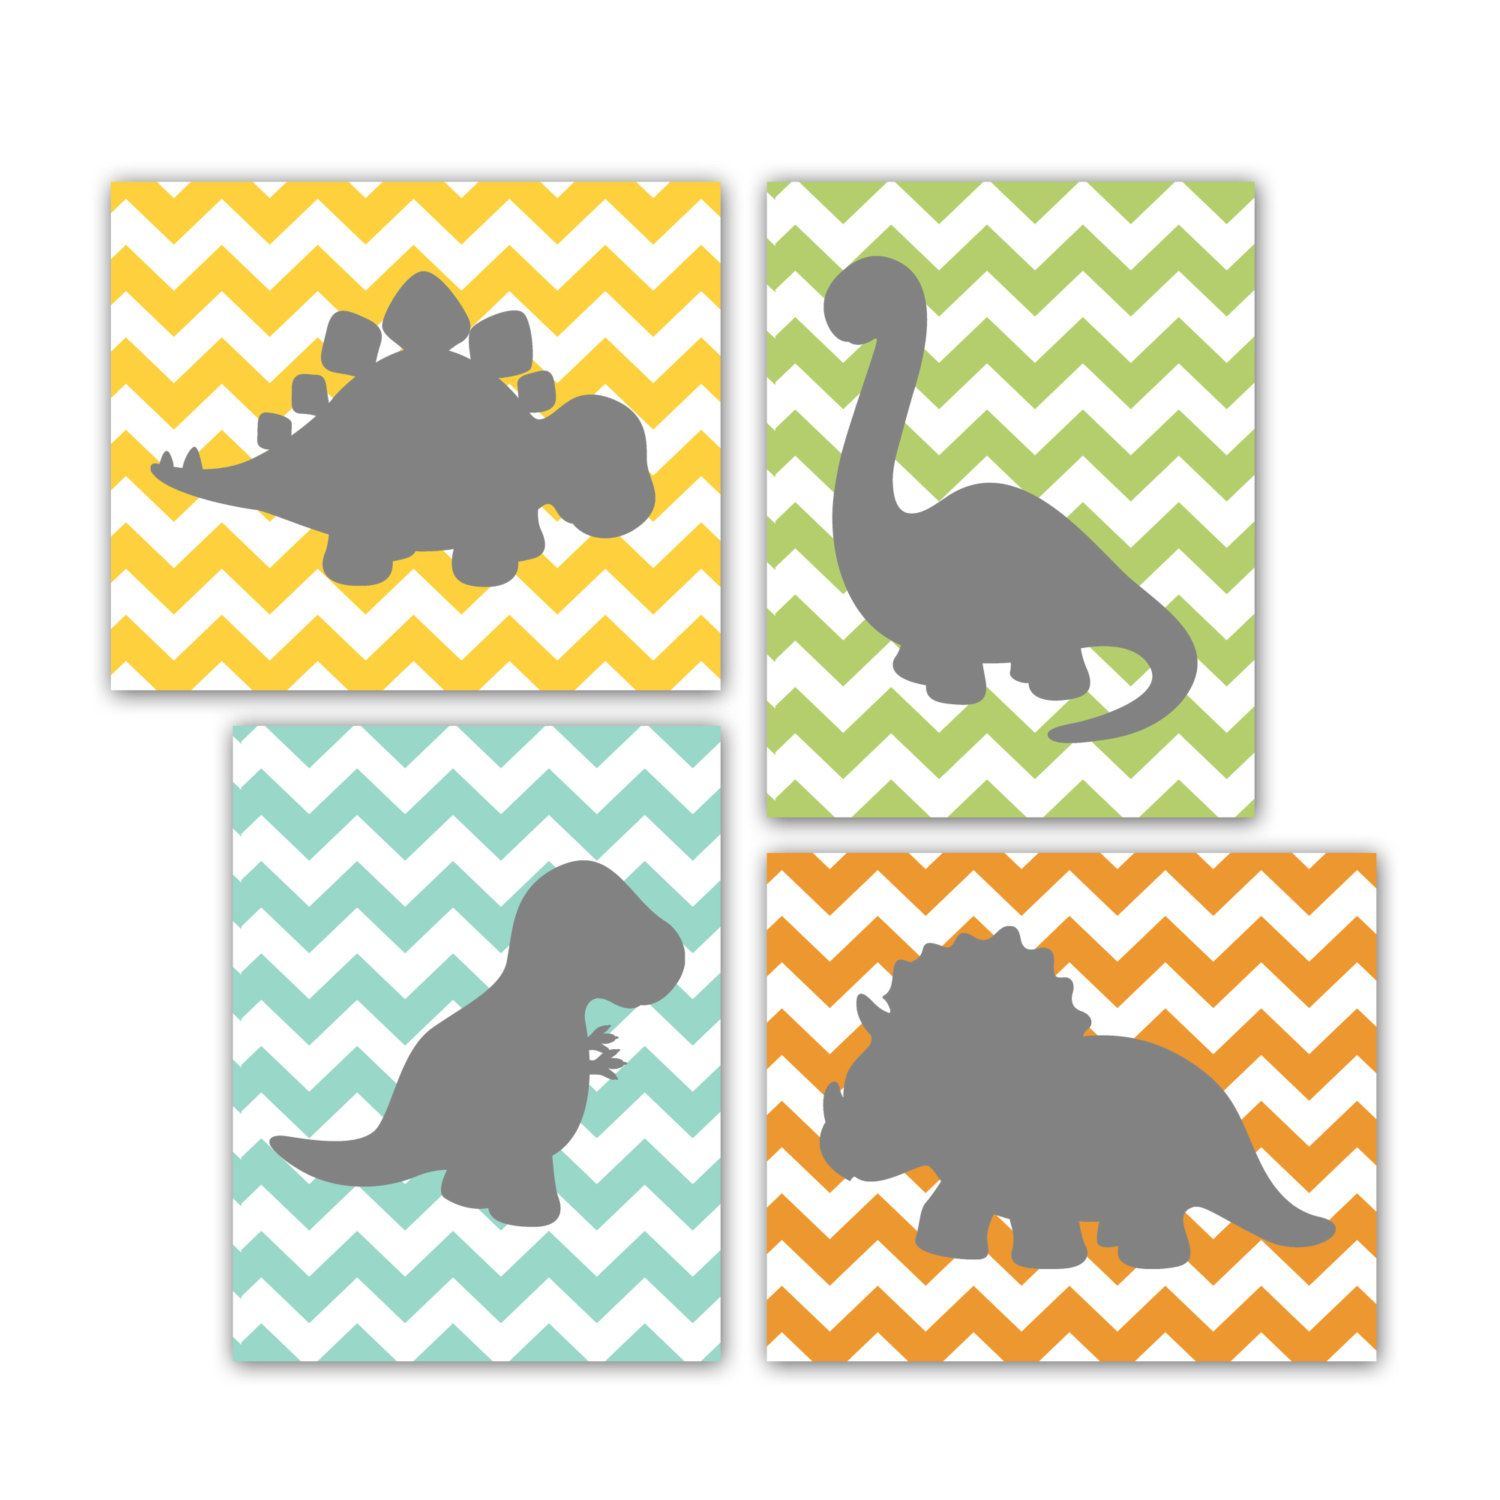 Popular Items For Nursery Decor On Etsy Baby Shower: Popular Items For Dinosaur Print On Etsy